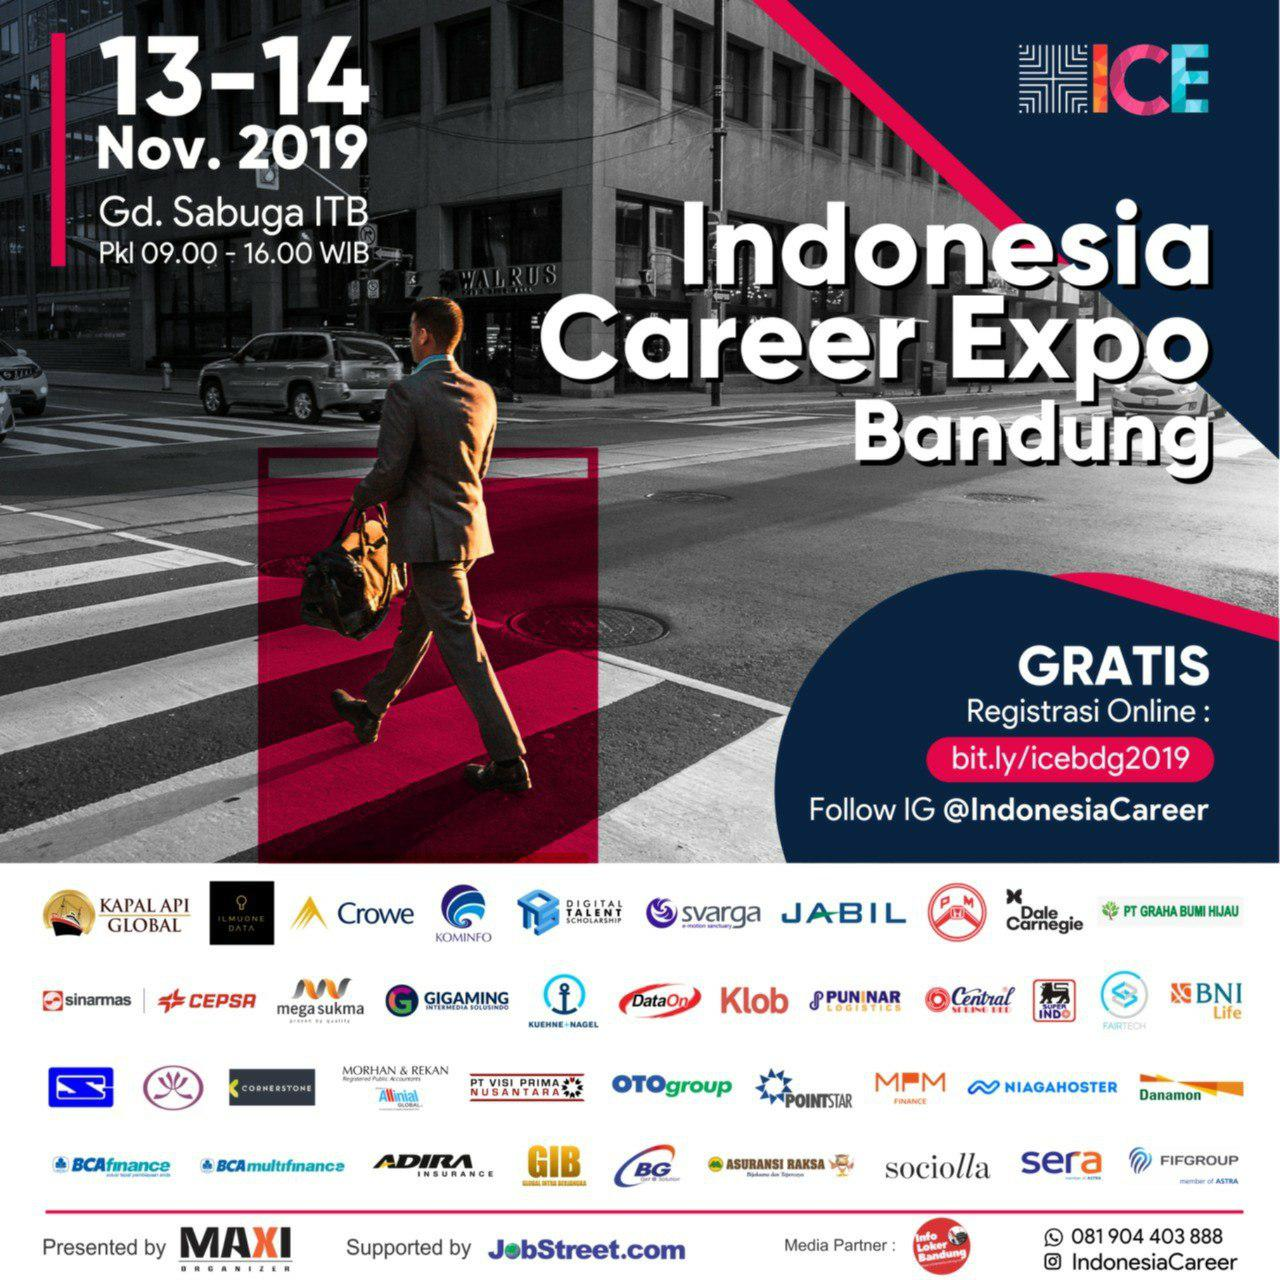 Indonesia Career Expo Bandung 13-14 November 2019